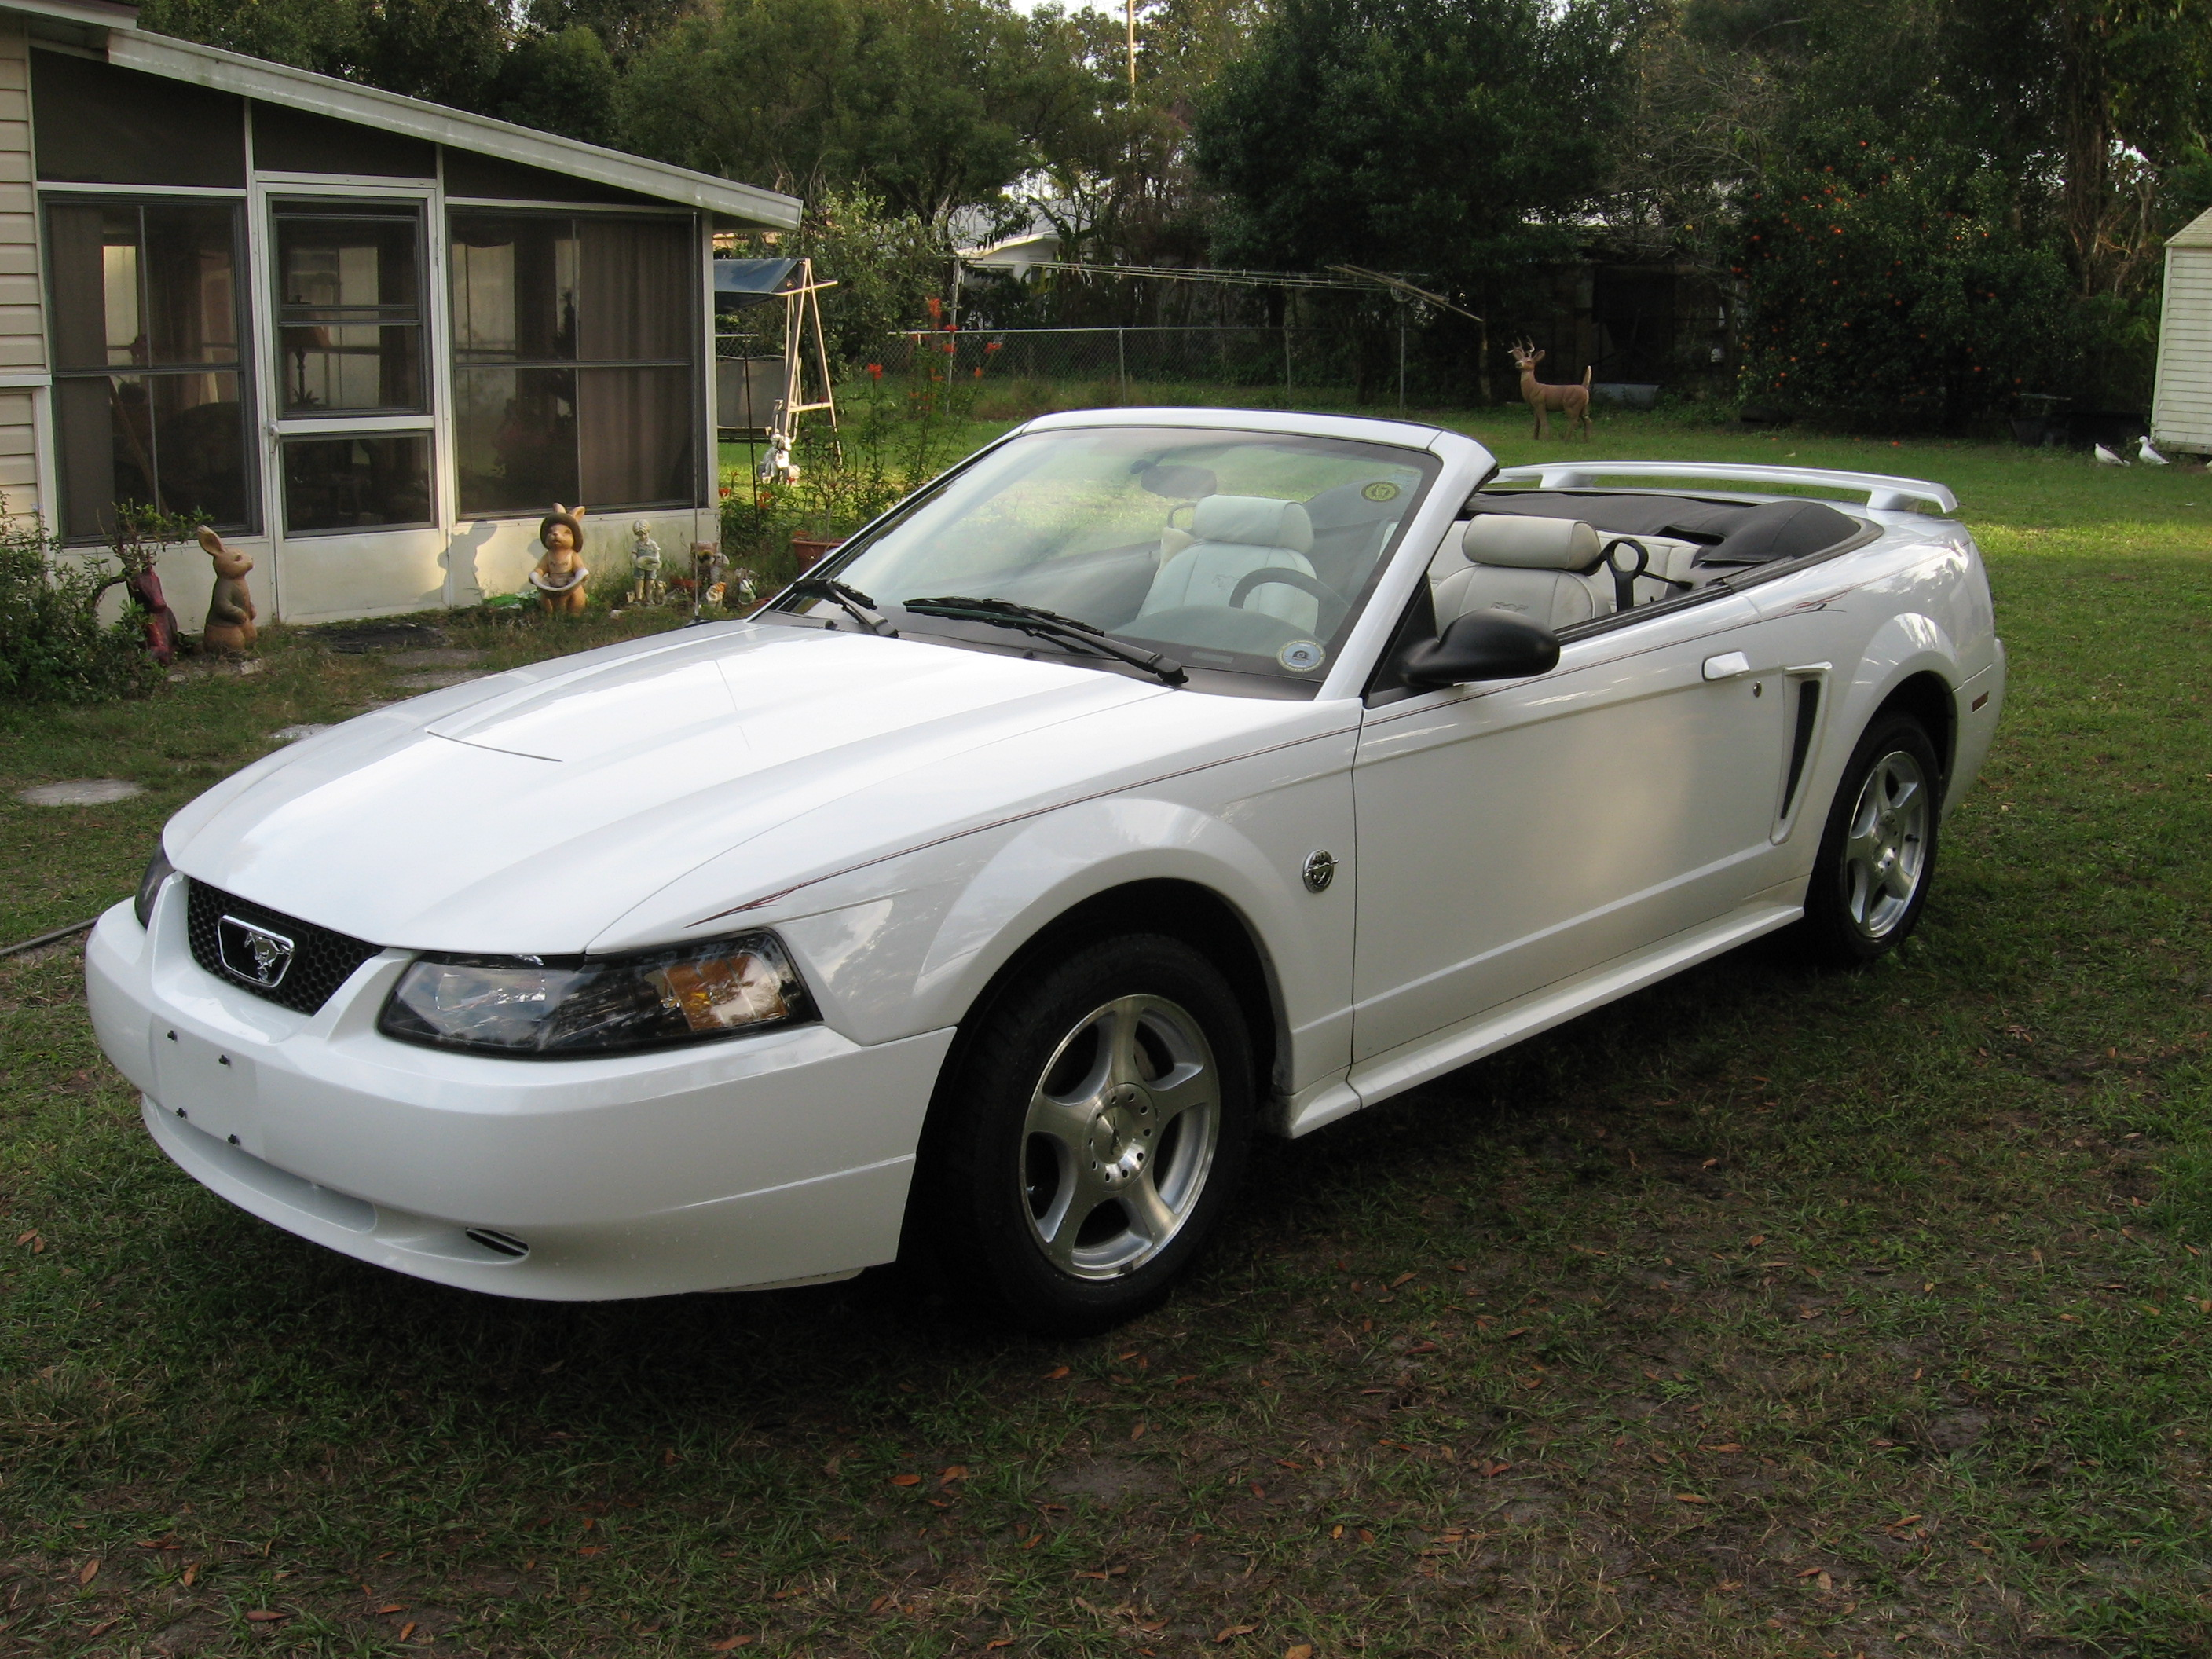 2004 Ford Mustang Convertible by vulpixgrant on DeviantArt